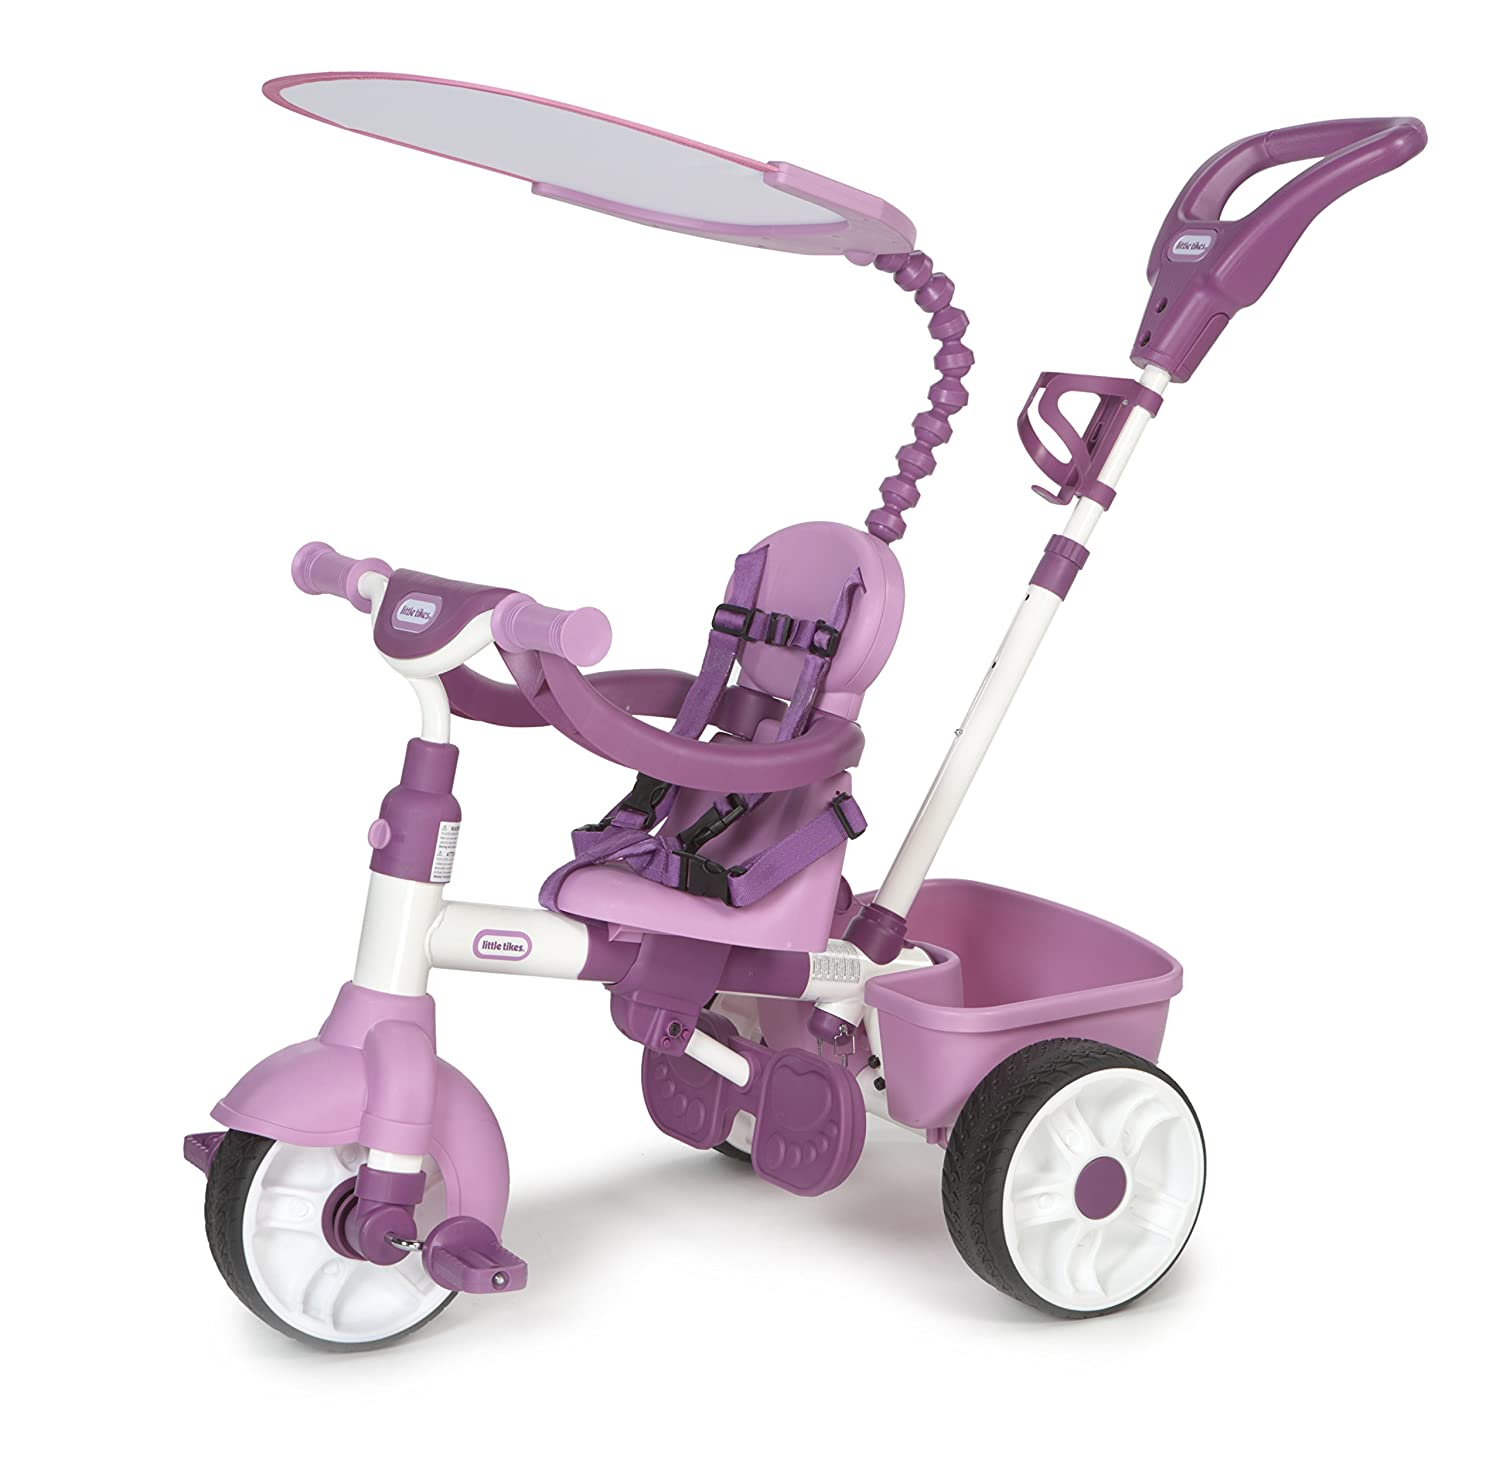 Little Tikes 4-in-1 Basic Edition Trike, Pink - toys ...